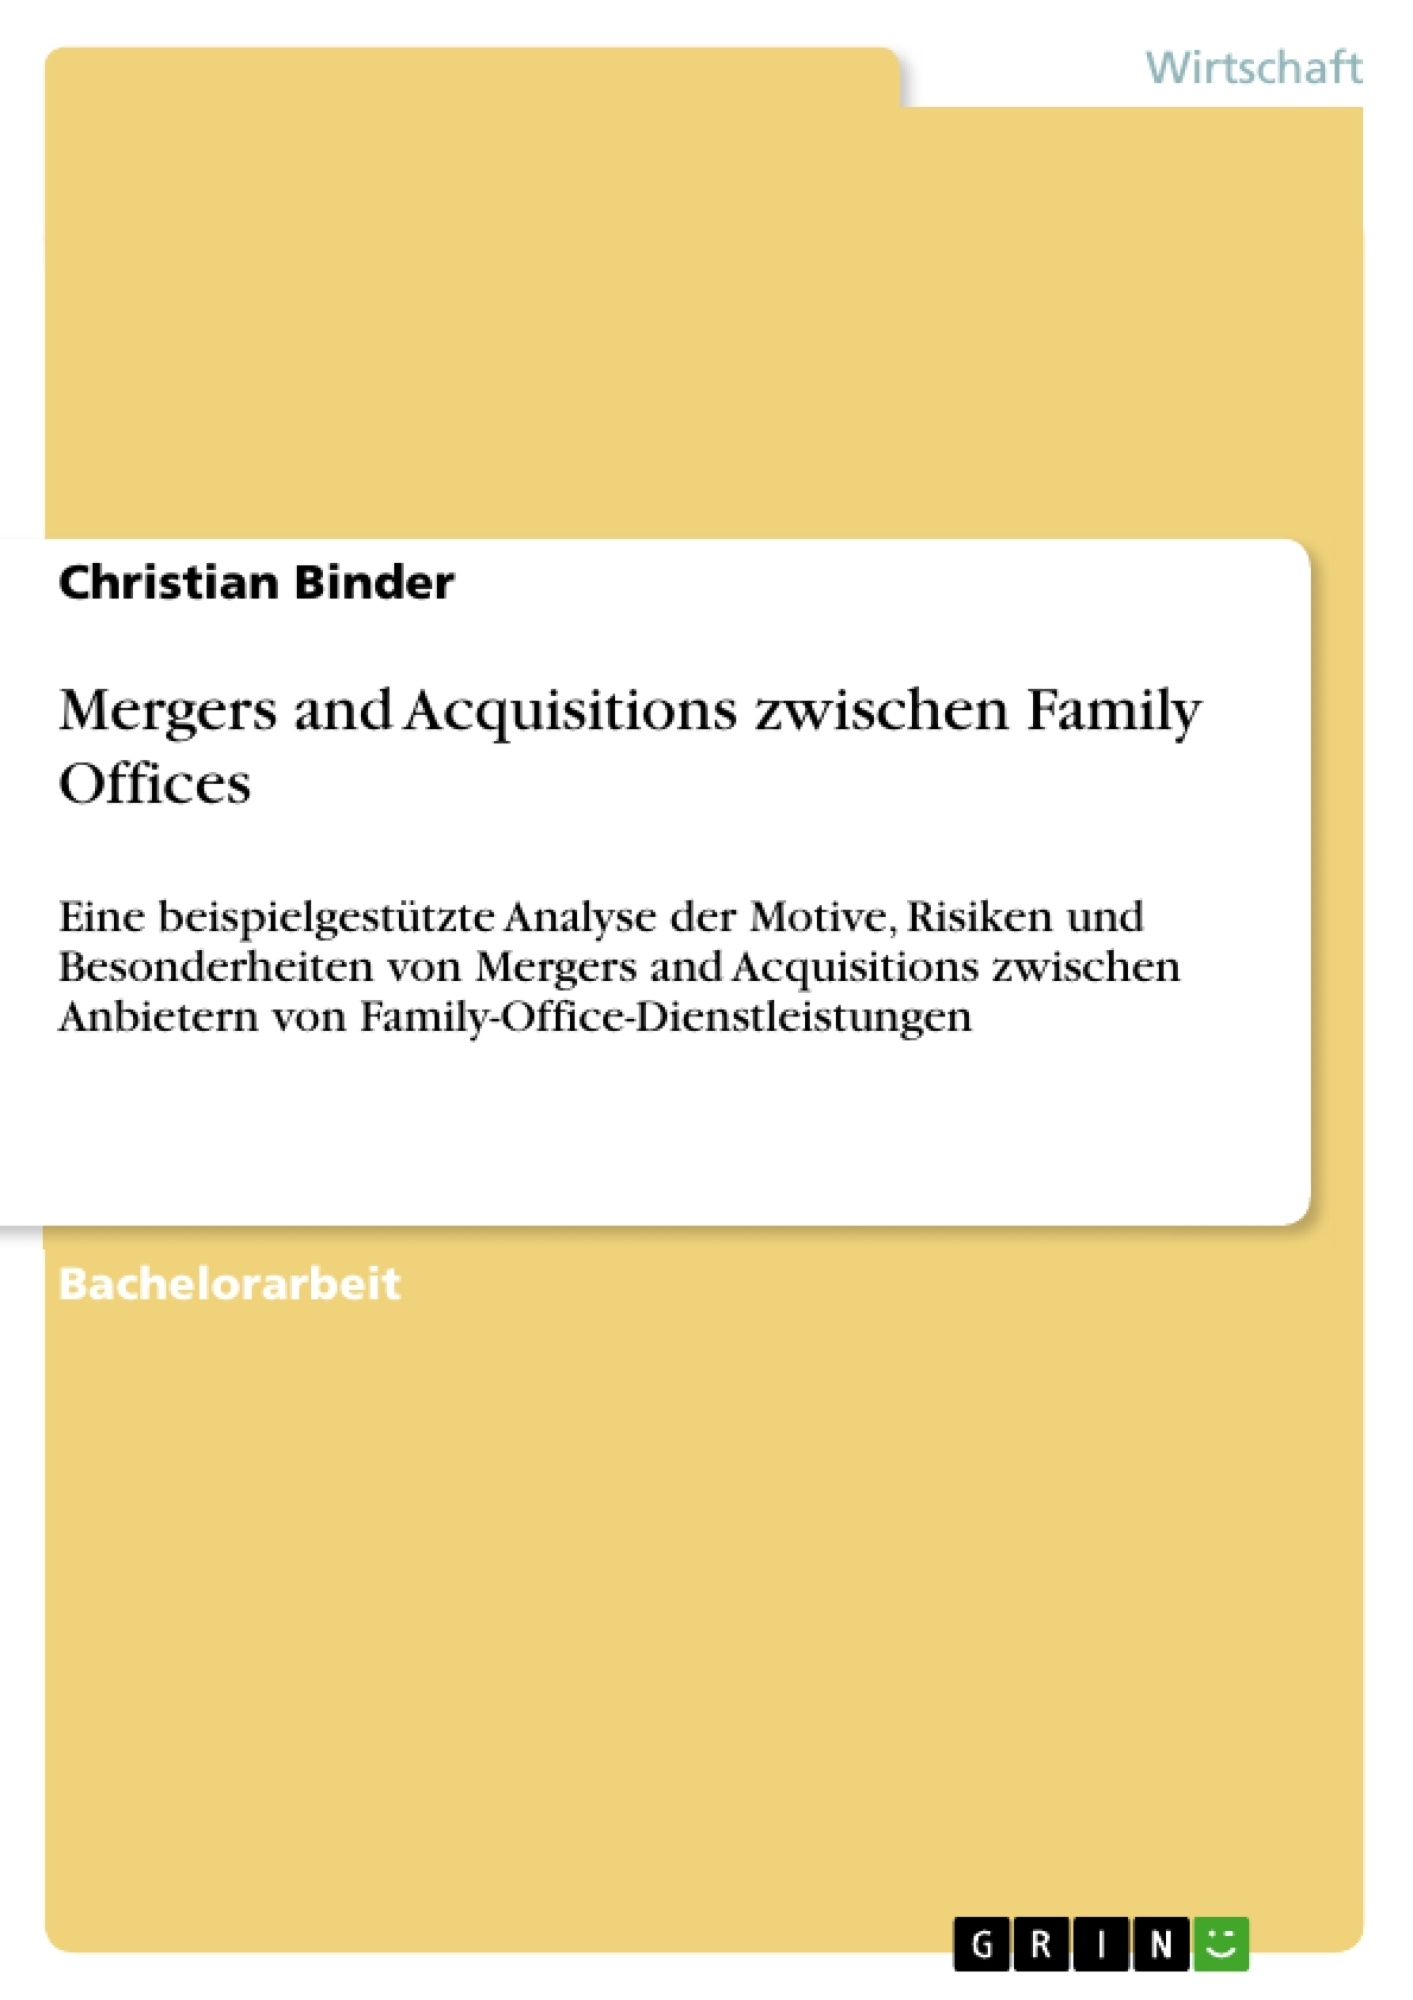 Titel: Mergers and Acquisitions zwischen Family Offices